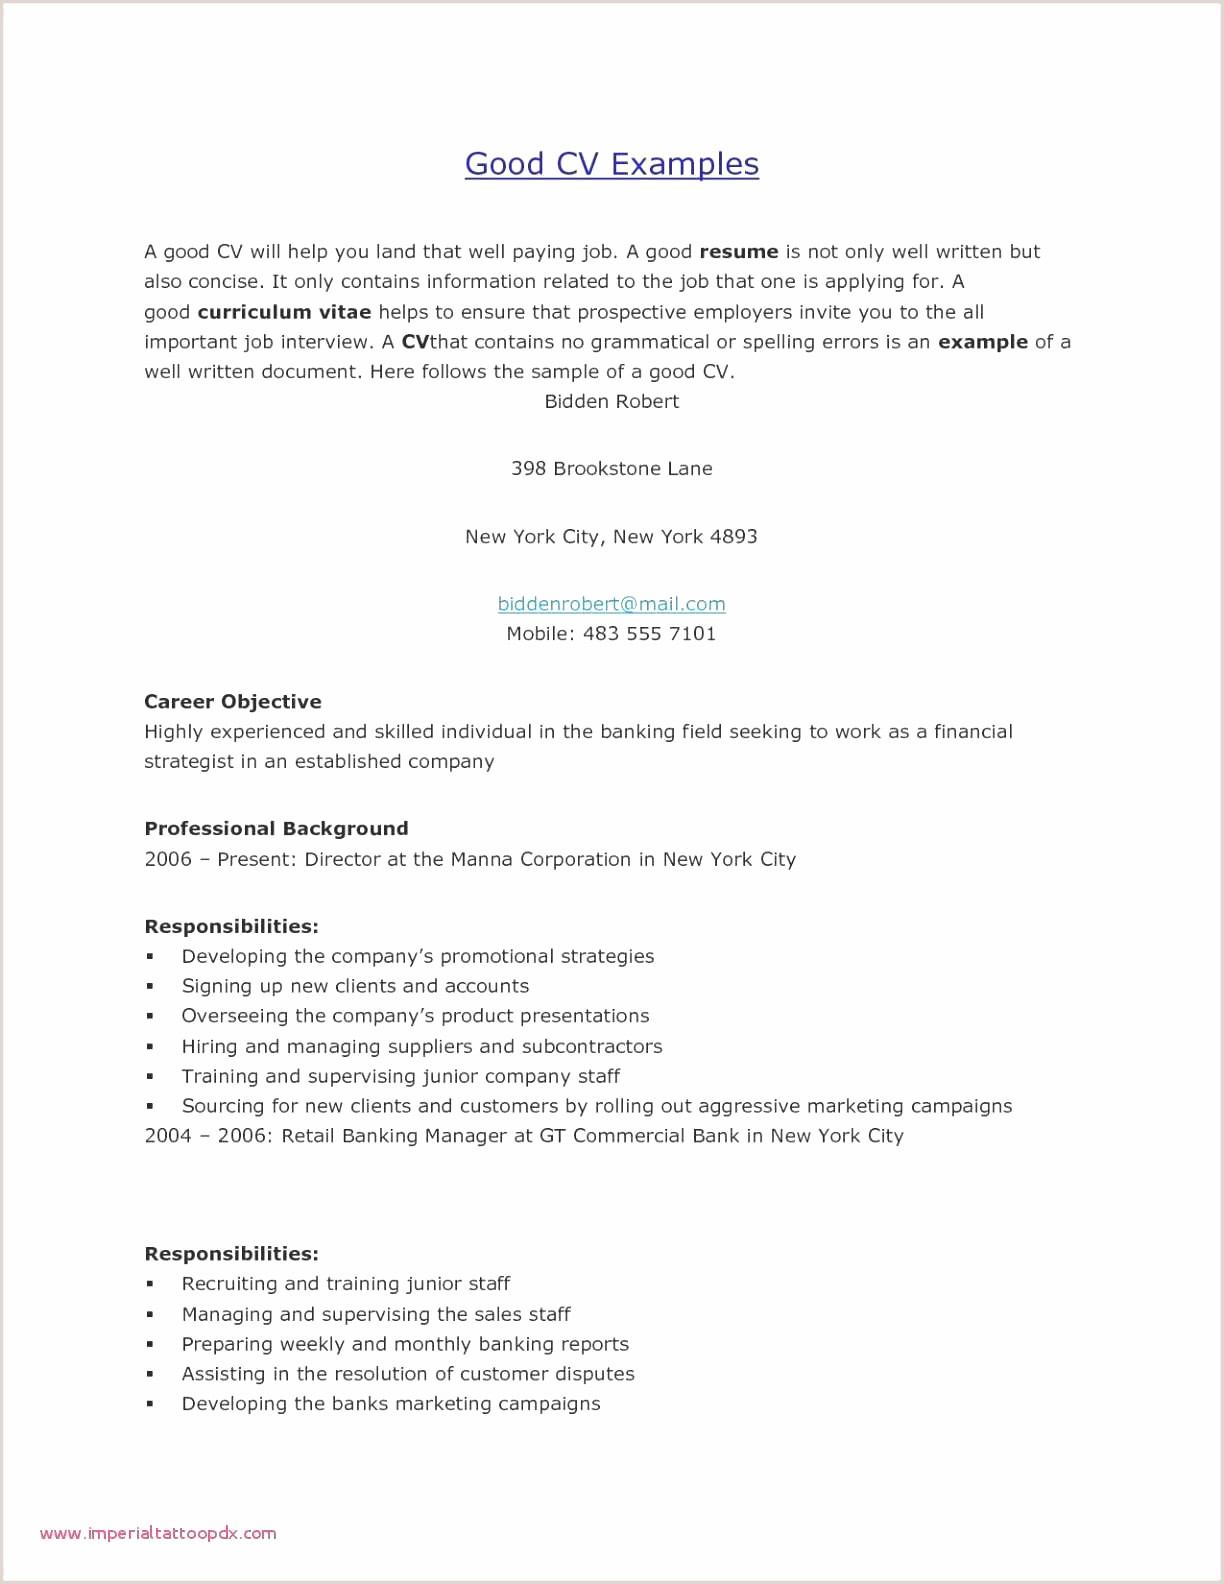 Standard Cv format for Bank Job Cv Career échantillon Example A Job Resume New Inspirational